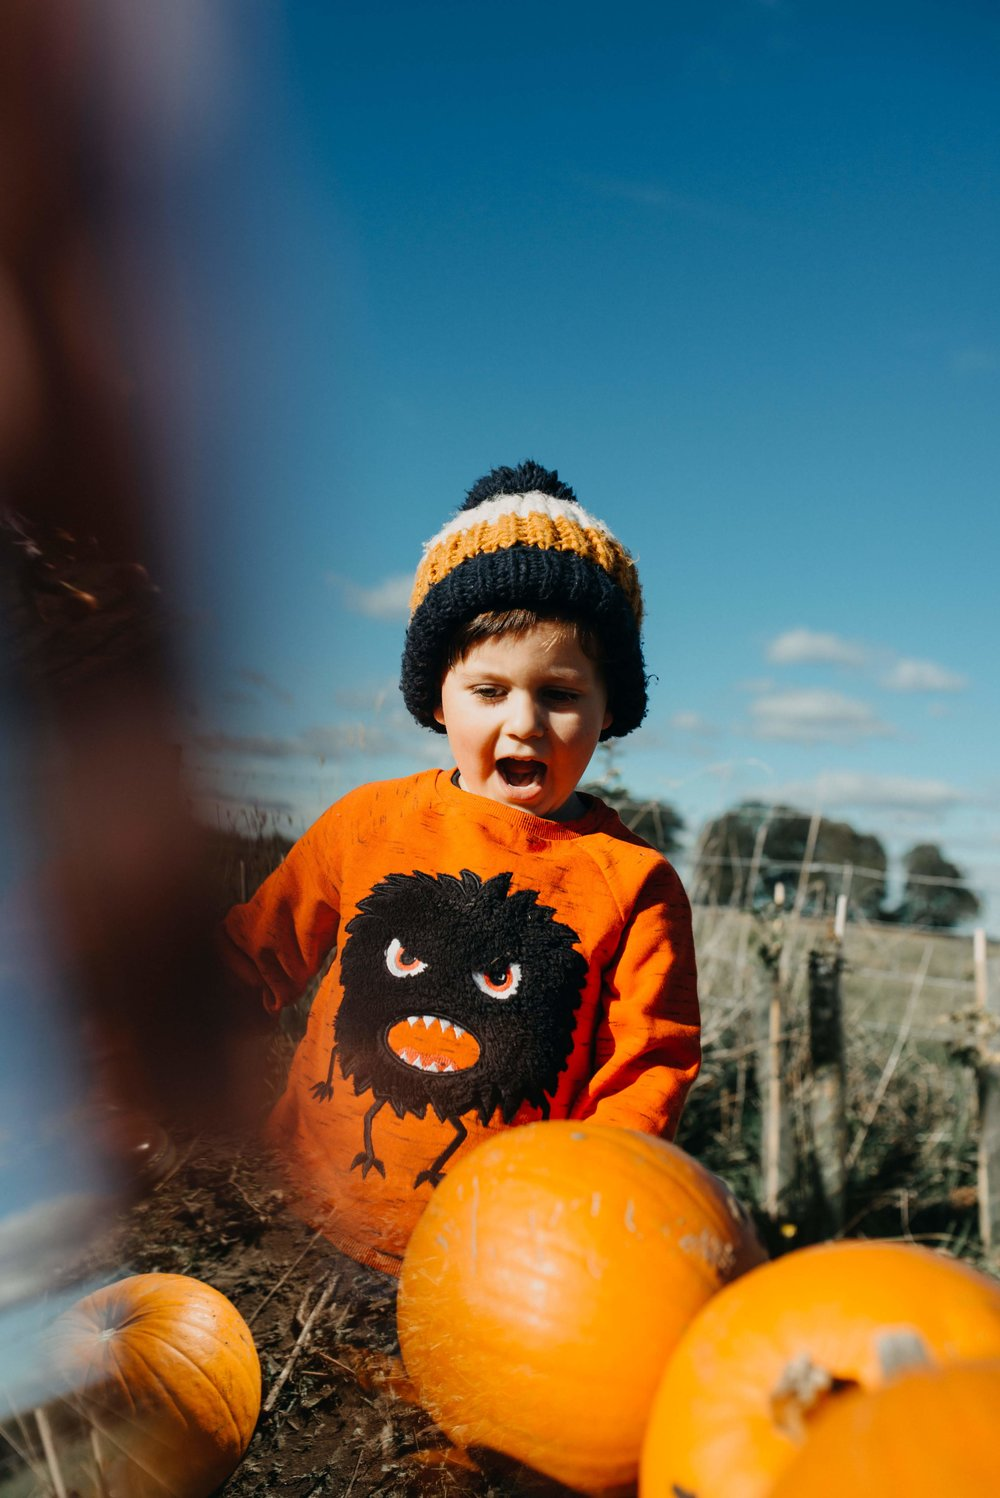 Pumpkin picking with Jesse, October 2018 - 56.jpg